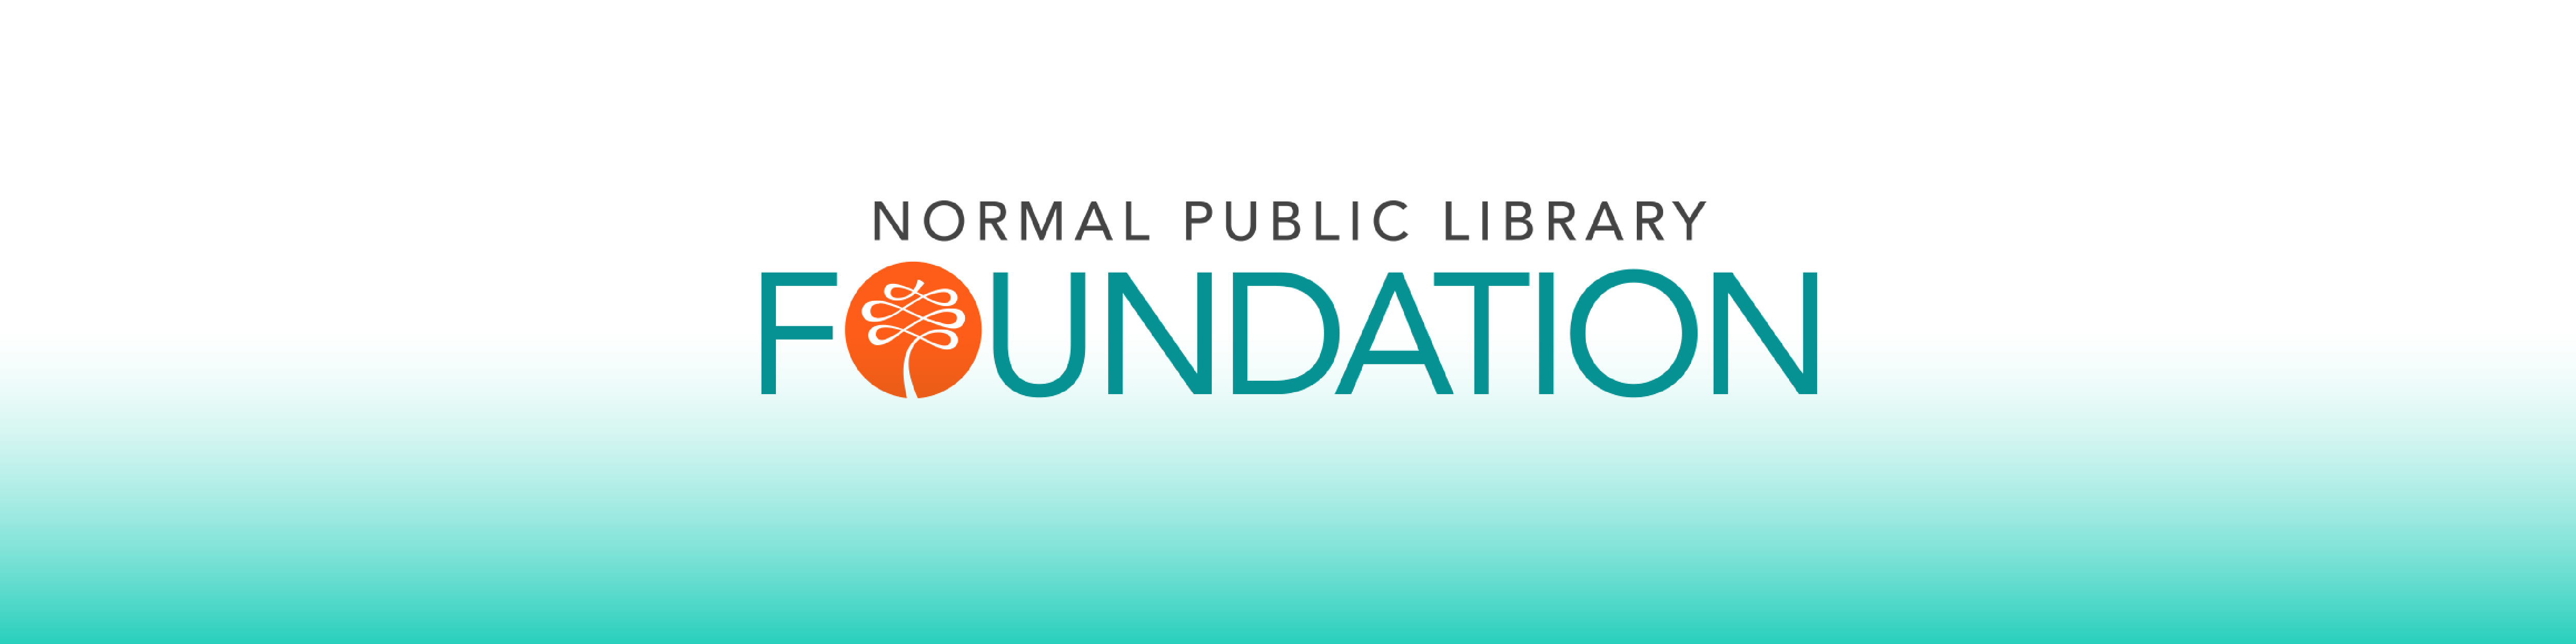 Normal Public Library Foundation